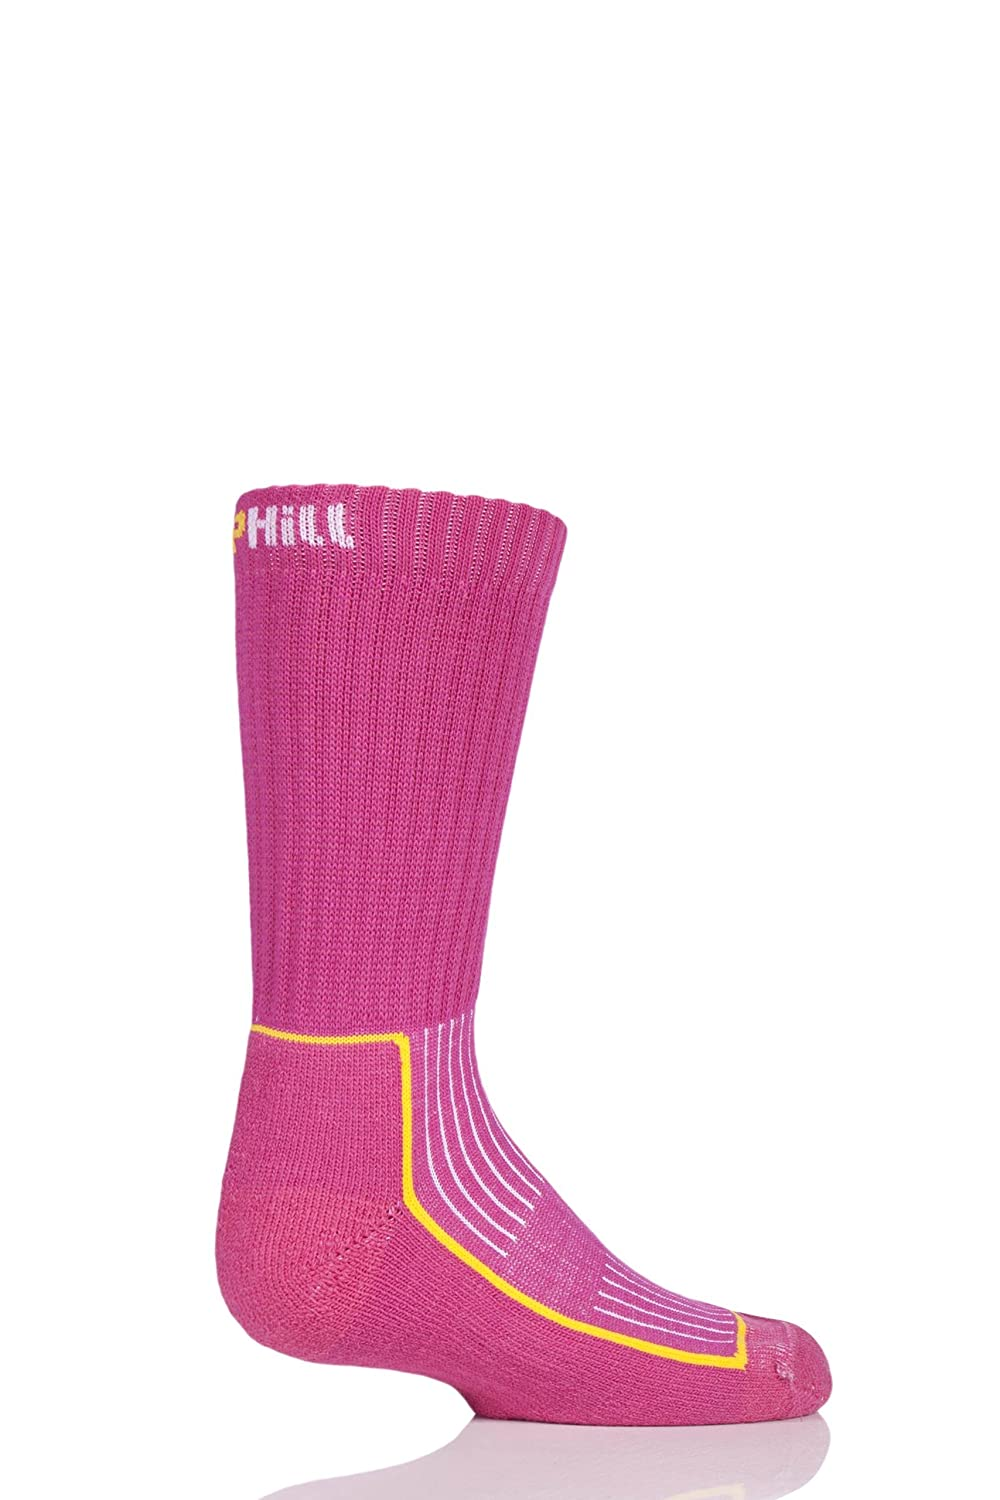 UpHill Sport Boys and Girls E6604 Made in Finland Hiking Socks Pack of 1